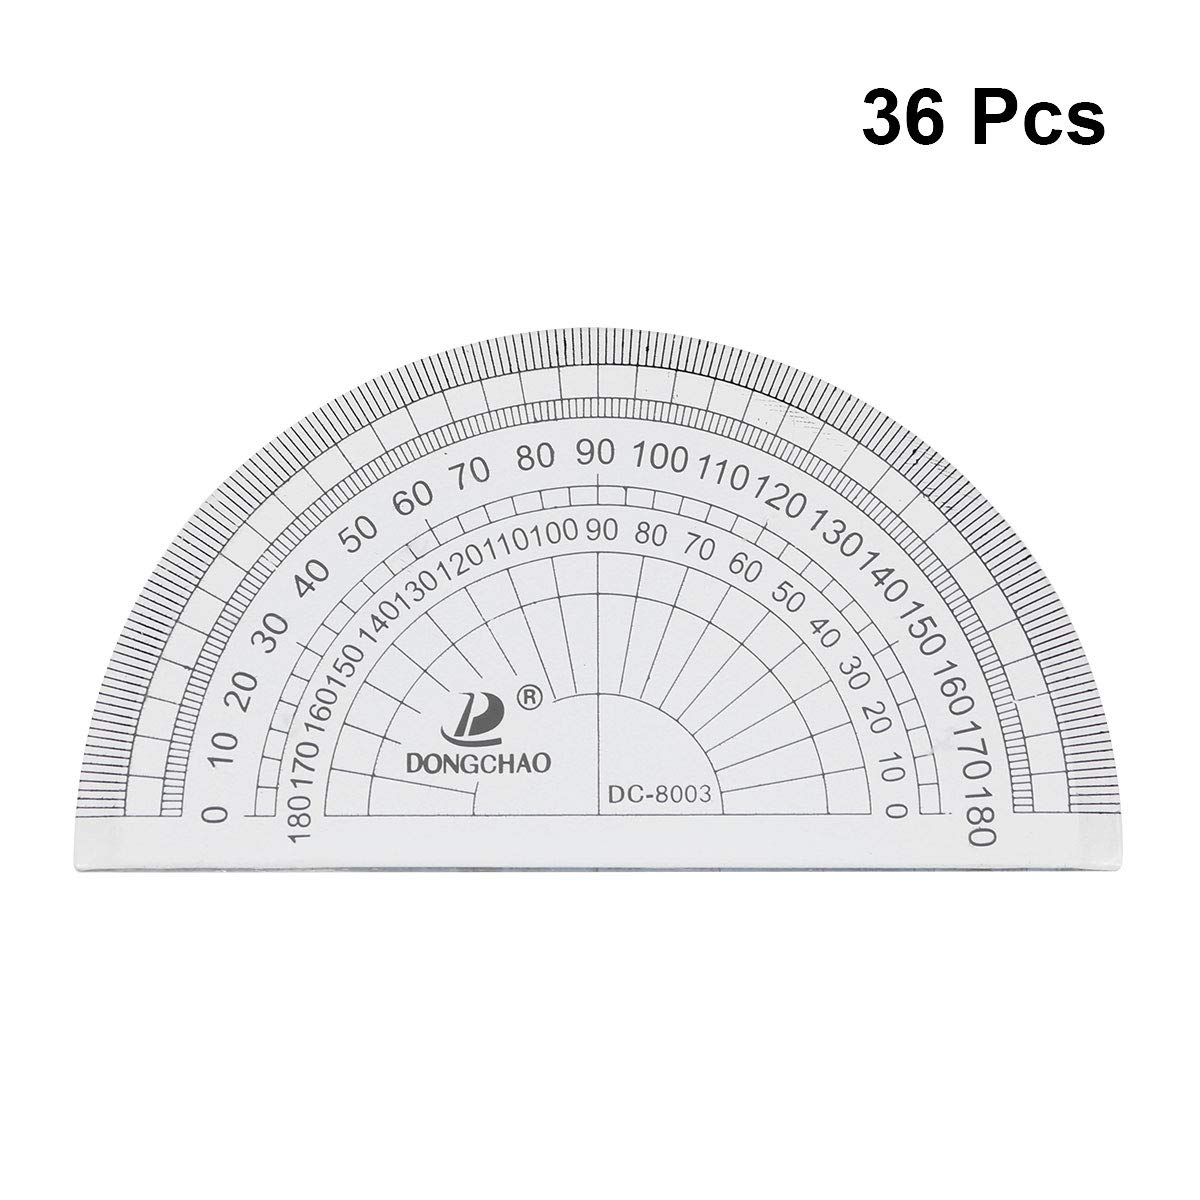 NUOBESTY 36pcs Plastic Protractor Math Protractor 180 Degrees Protractor for Angle Measurement Student School Office Supply by NUOBESTY (Image #1)